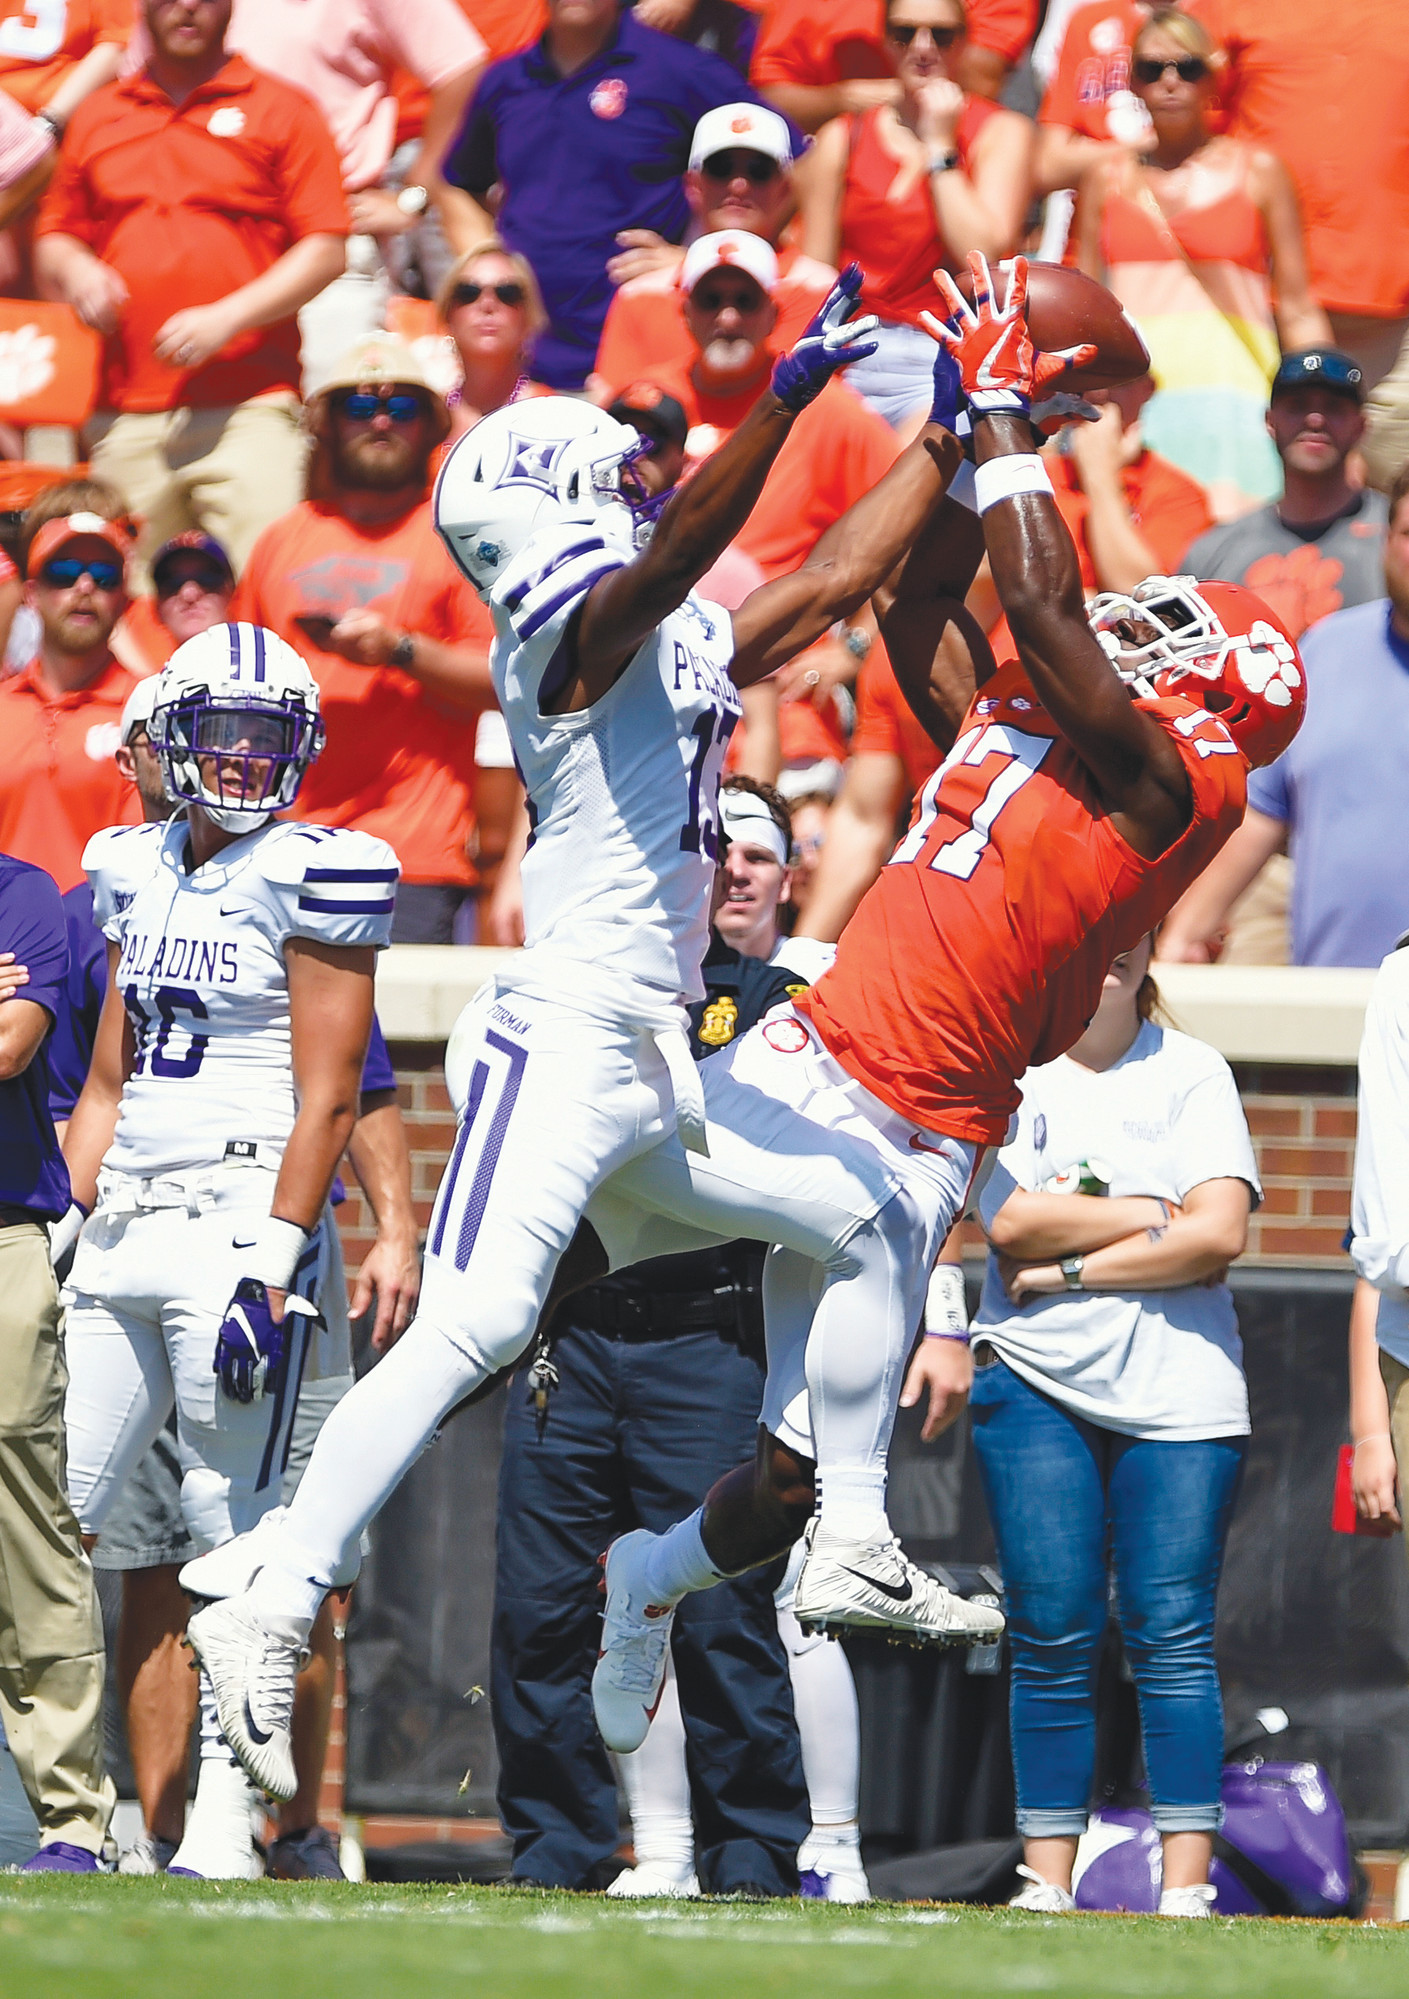 Clemson's Cornell Powell (17) pulls in a reception while defended by Furman's Quandarius Weems during the first half of an NCAA college football game Saturday, Sept. 1, 2018, in Clemson, S.C. (AP Photo/Richard Shiro)